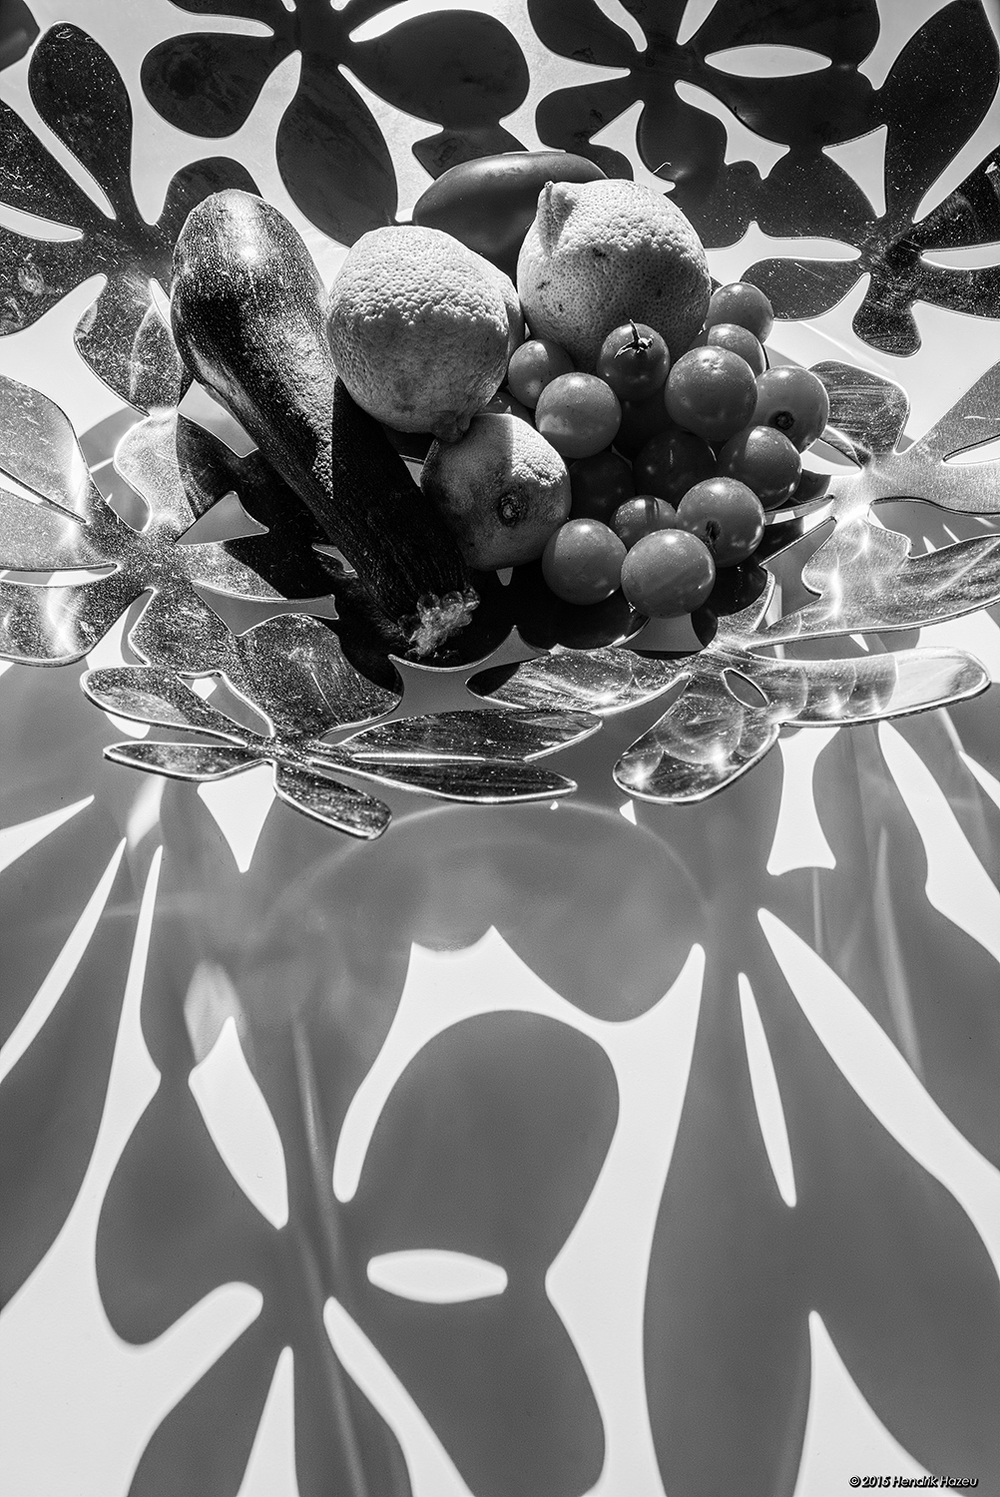 Fruit Bowl Shadows